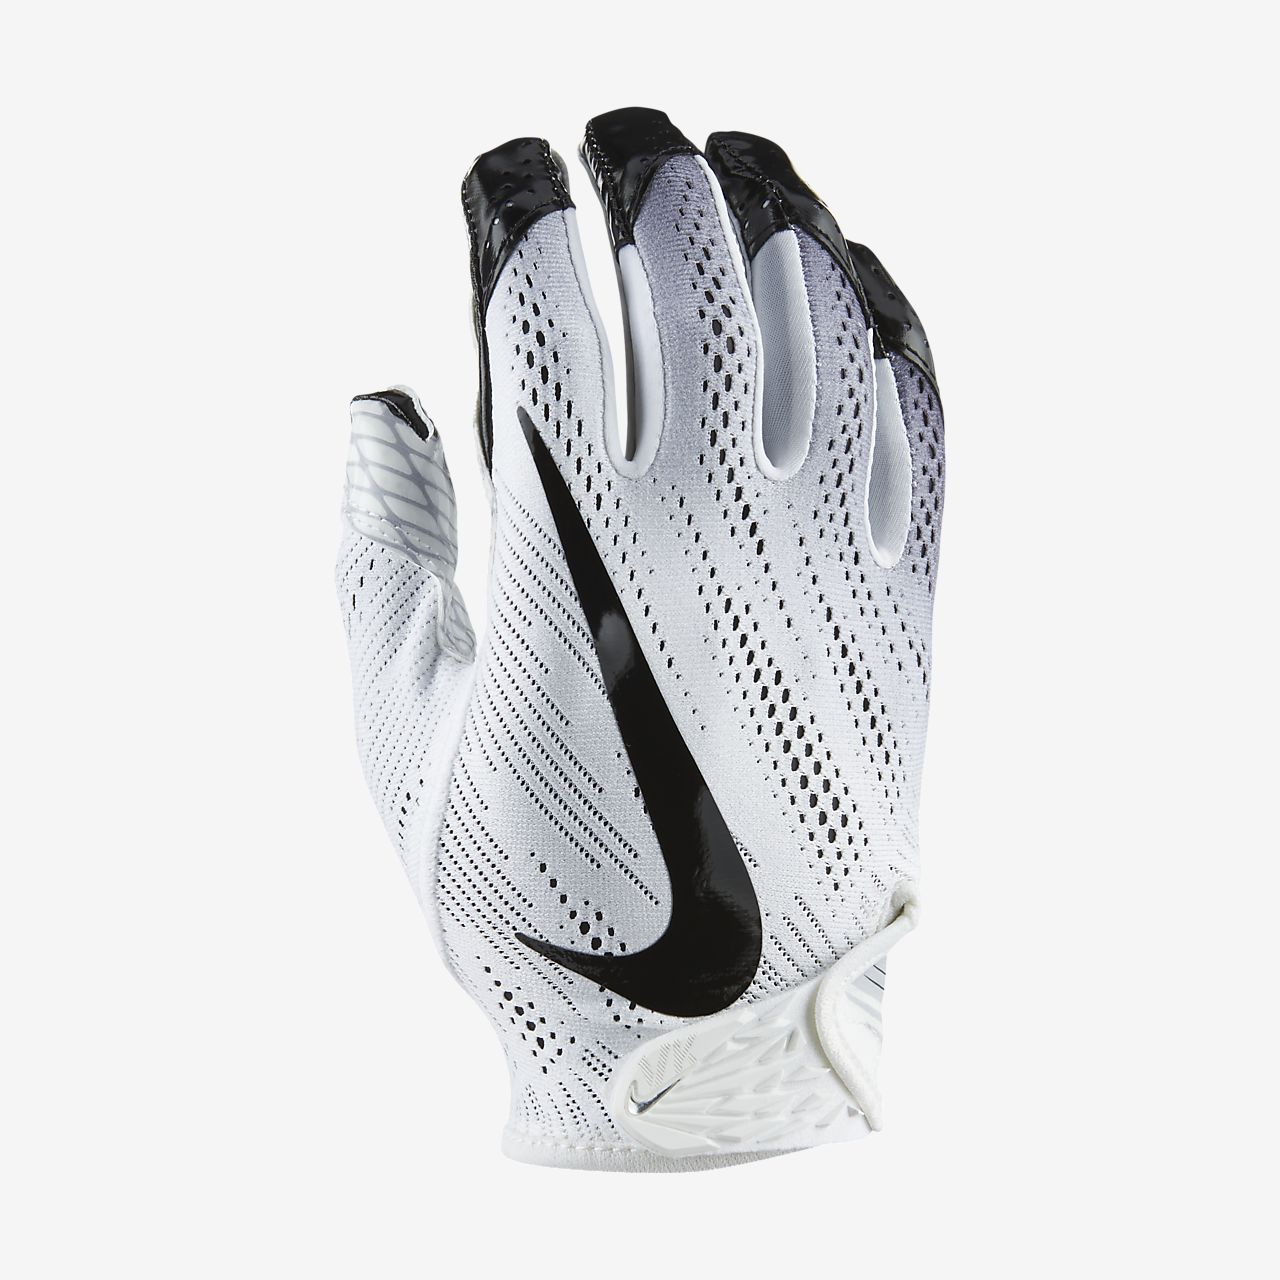 Nike Vapor Knit 2.0 Football Gloves. Nike.com b384b9dd9d